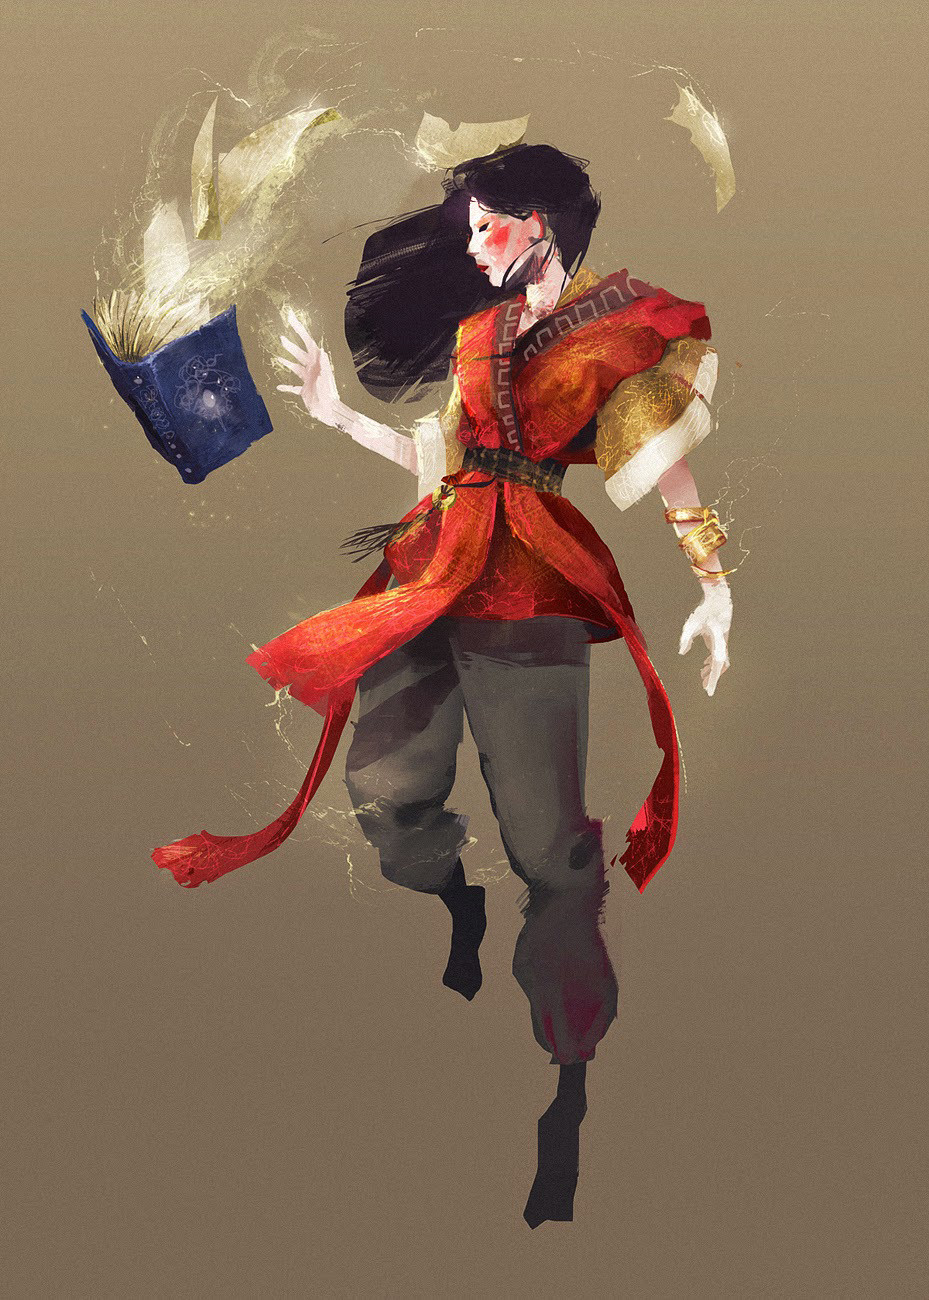 Lucas prince charadesign witchwizard